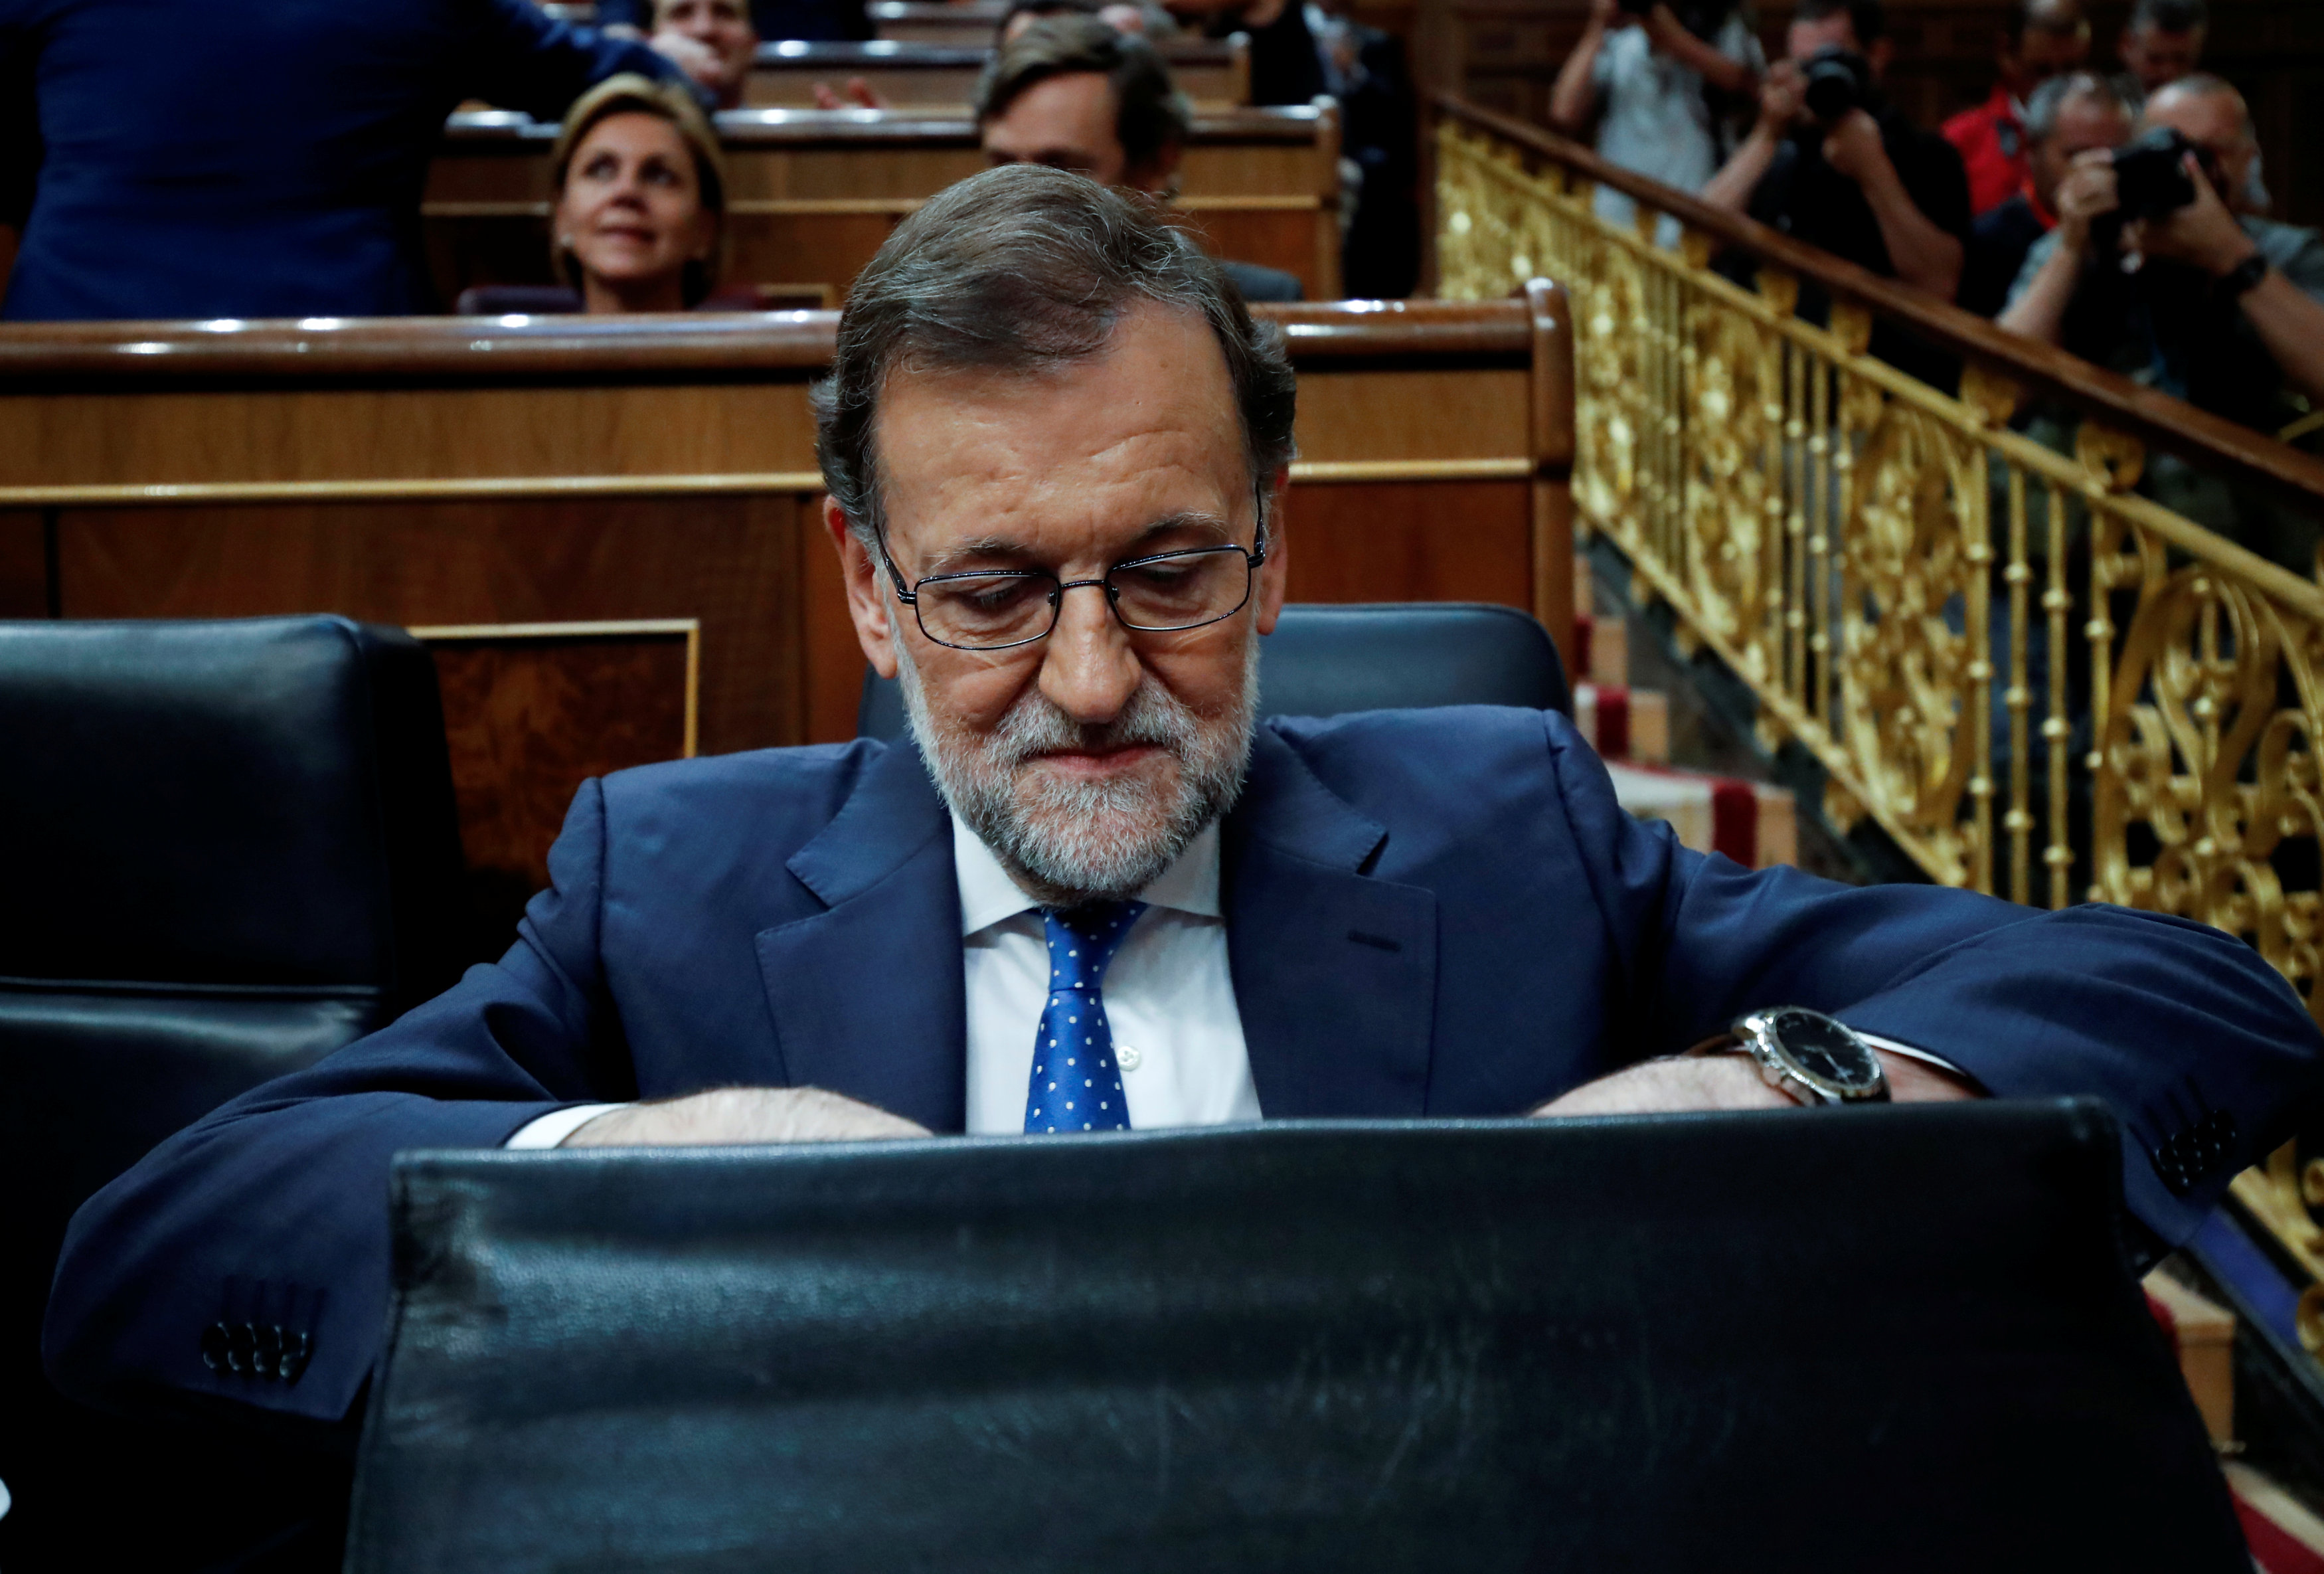 Spain's acting PM and People's Party (PP) leader Mariano Rajoy arrives for an investiture debate at parliament in Madrid, Spain, August 30, 2016.</body></html>